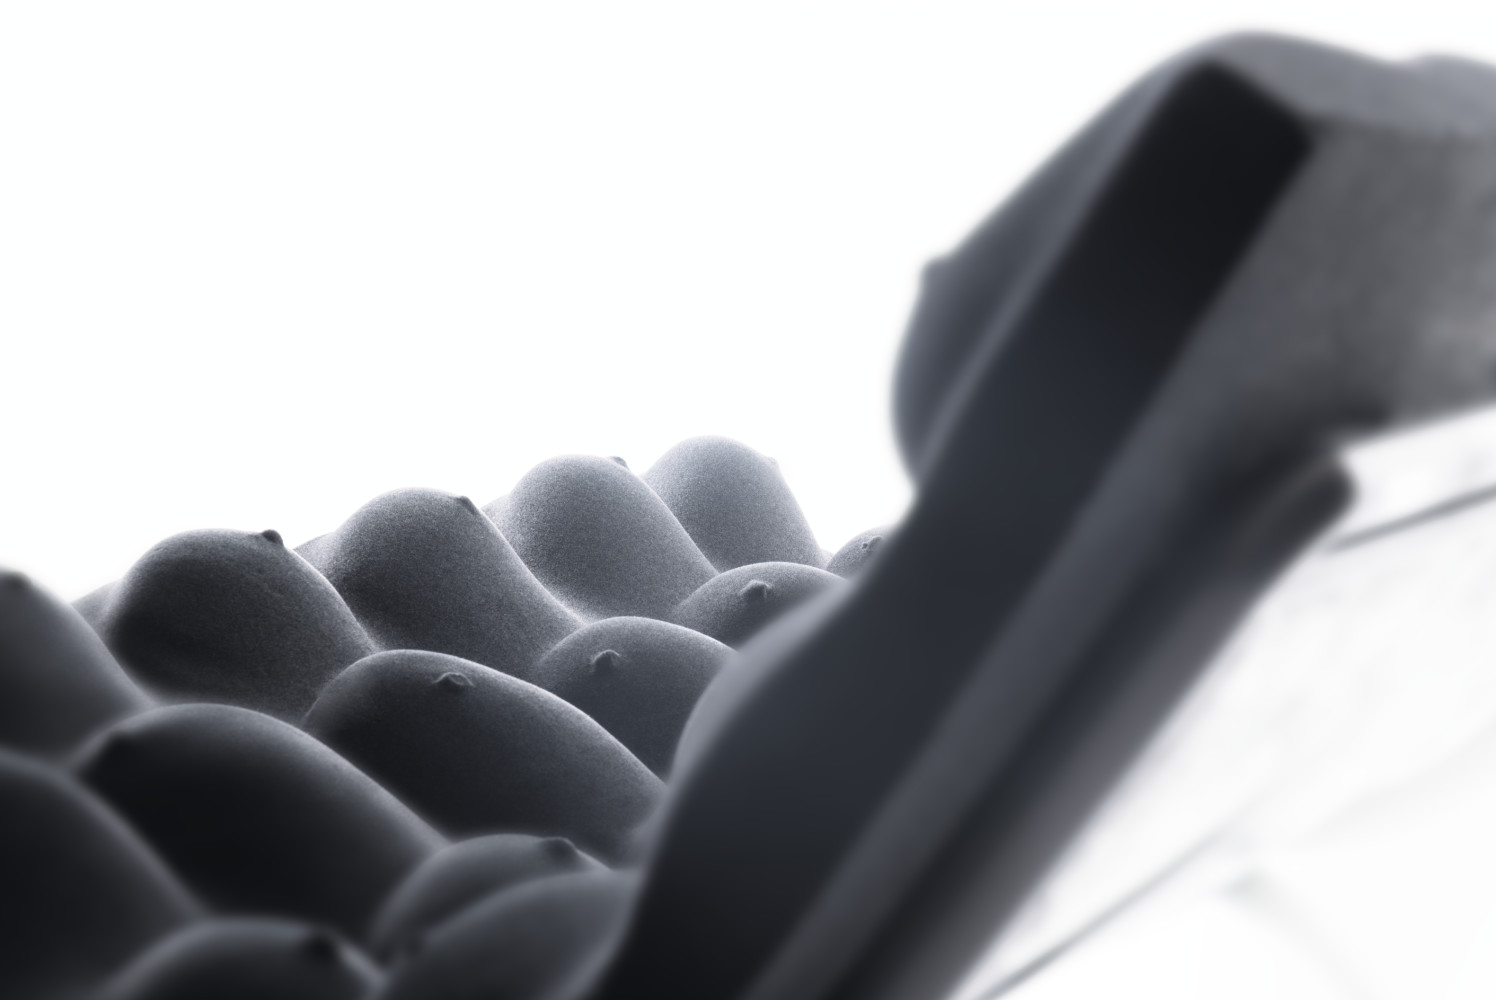 Detail of boobs on Meanwhile sofa. Casted woman breast.